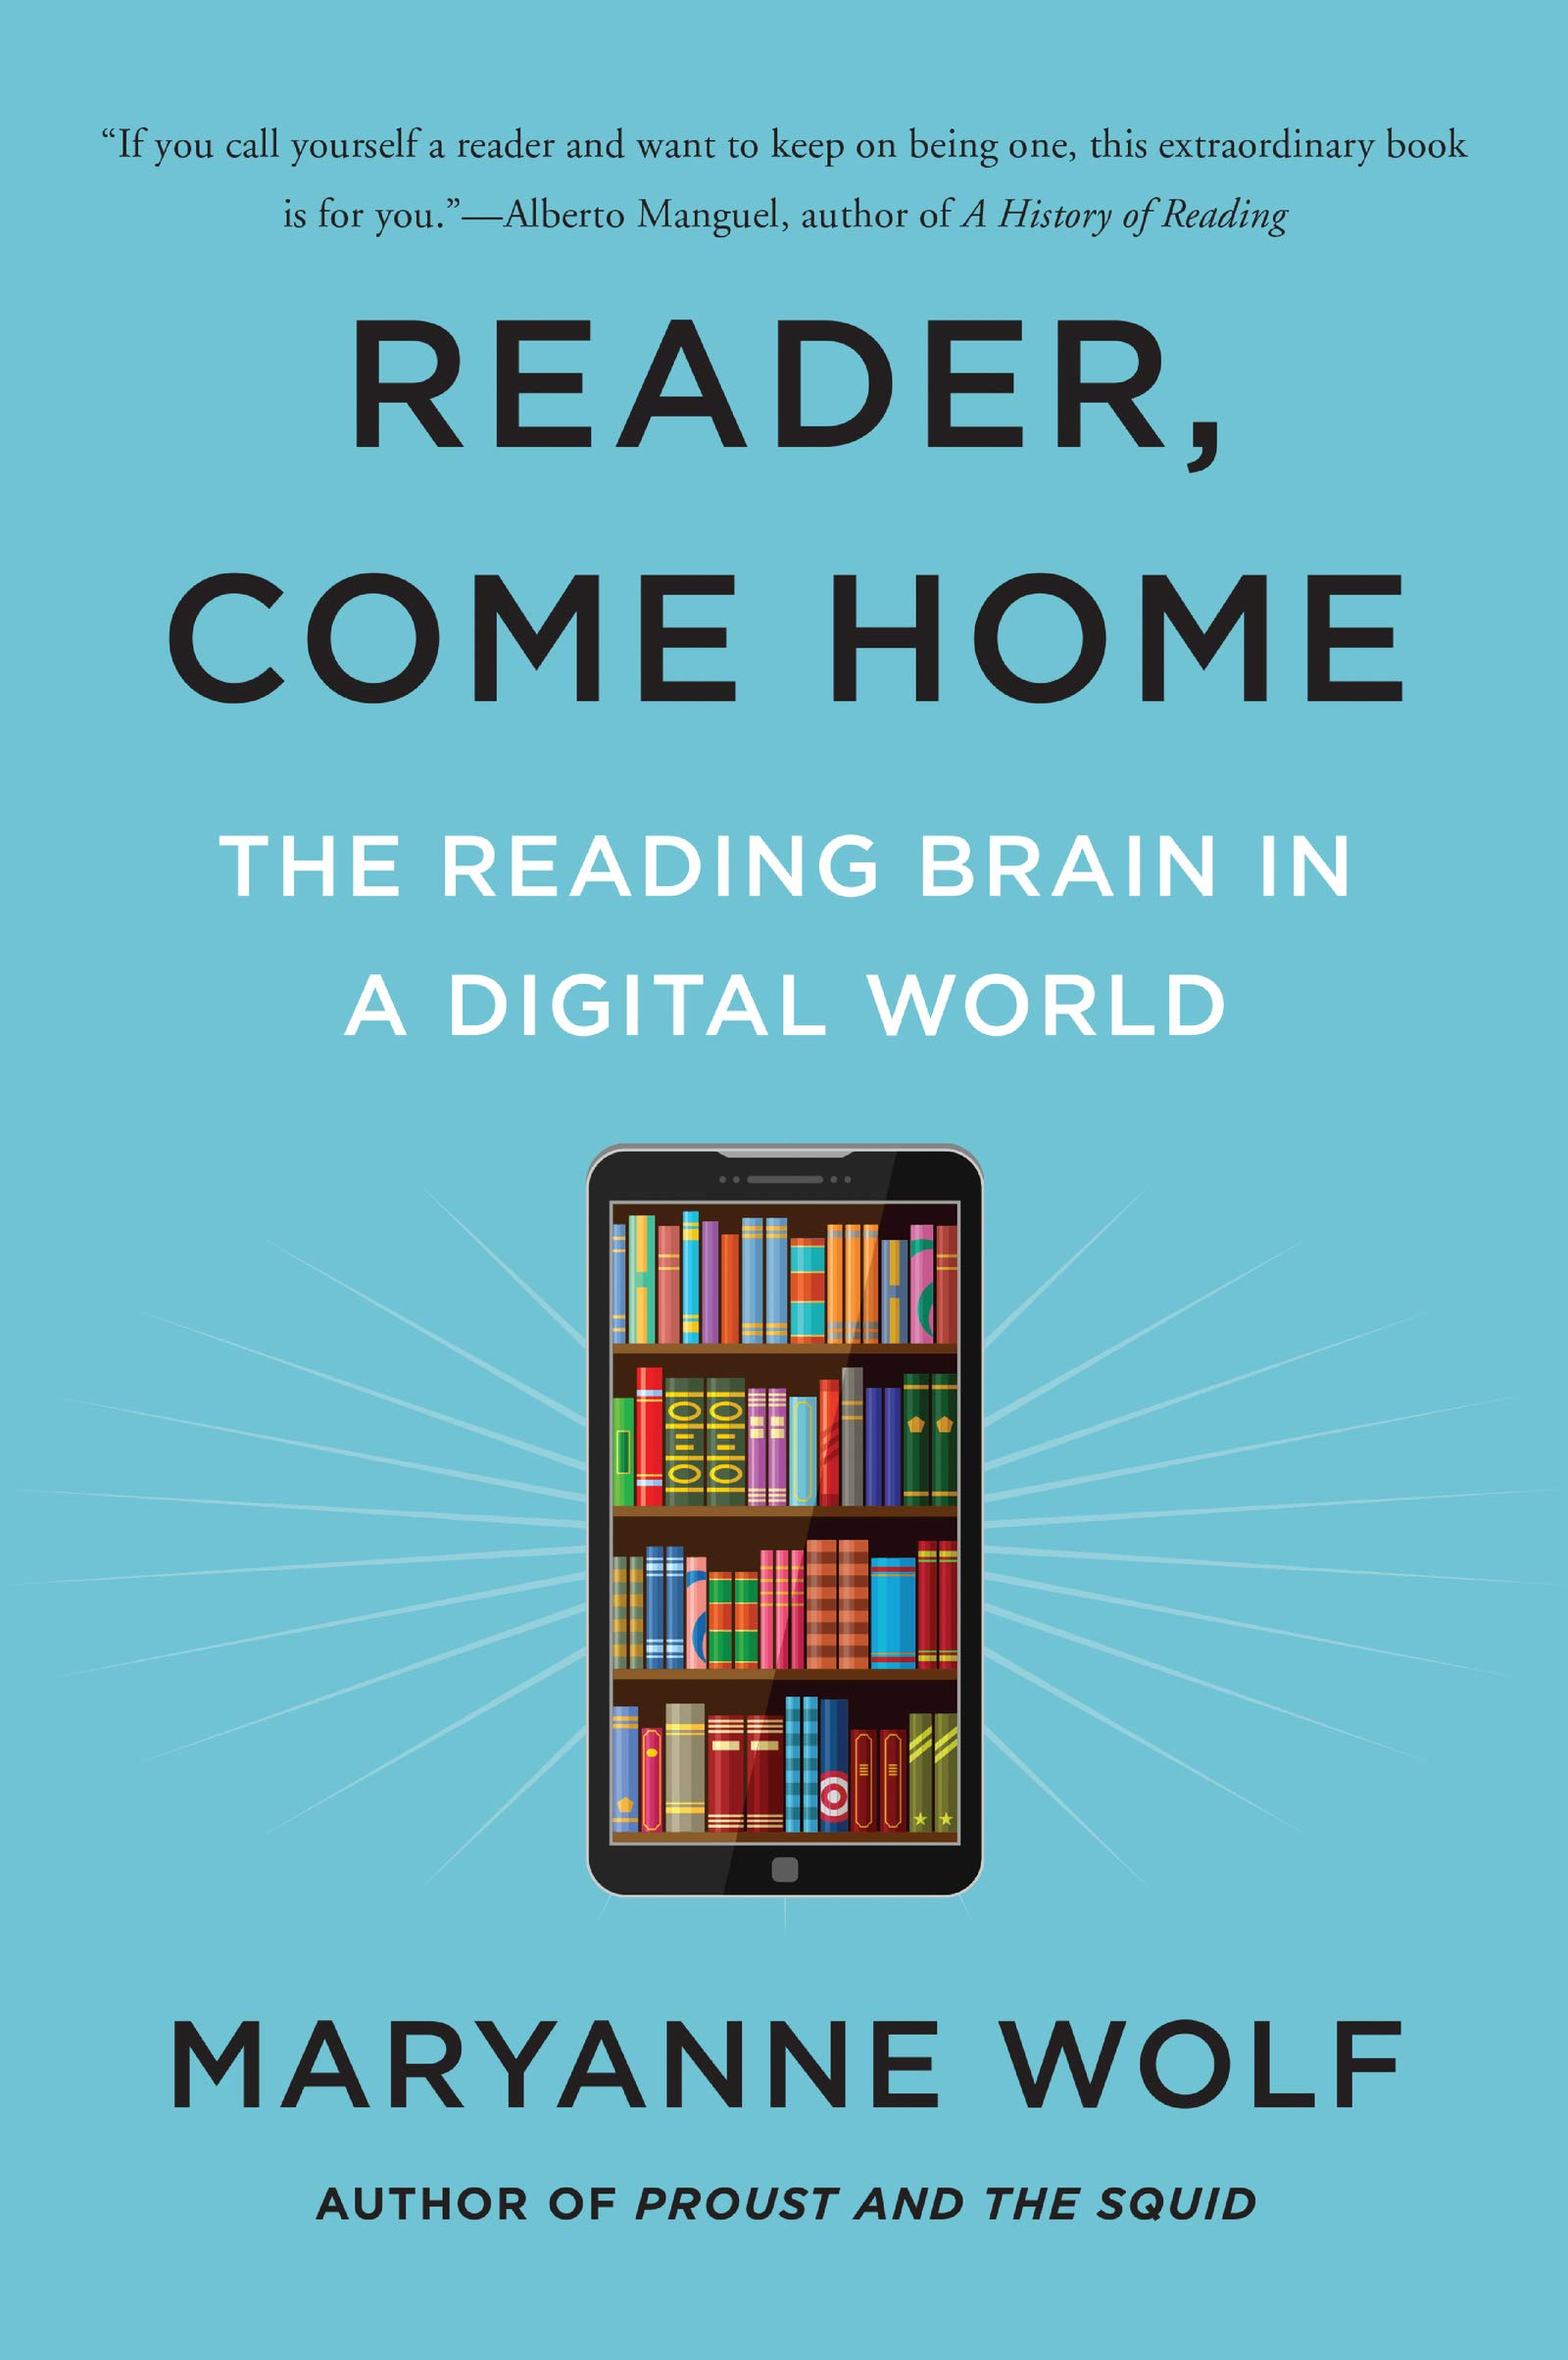 Reader, Come Home: The Reading Brain in a Digital